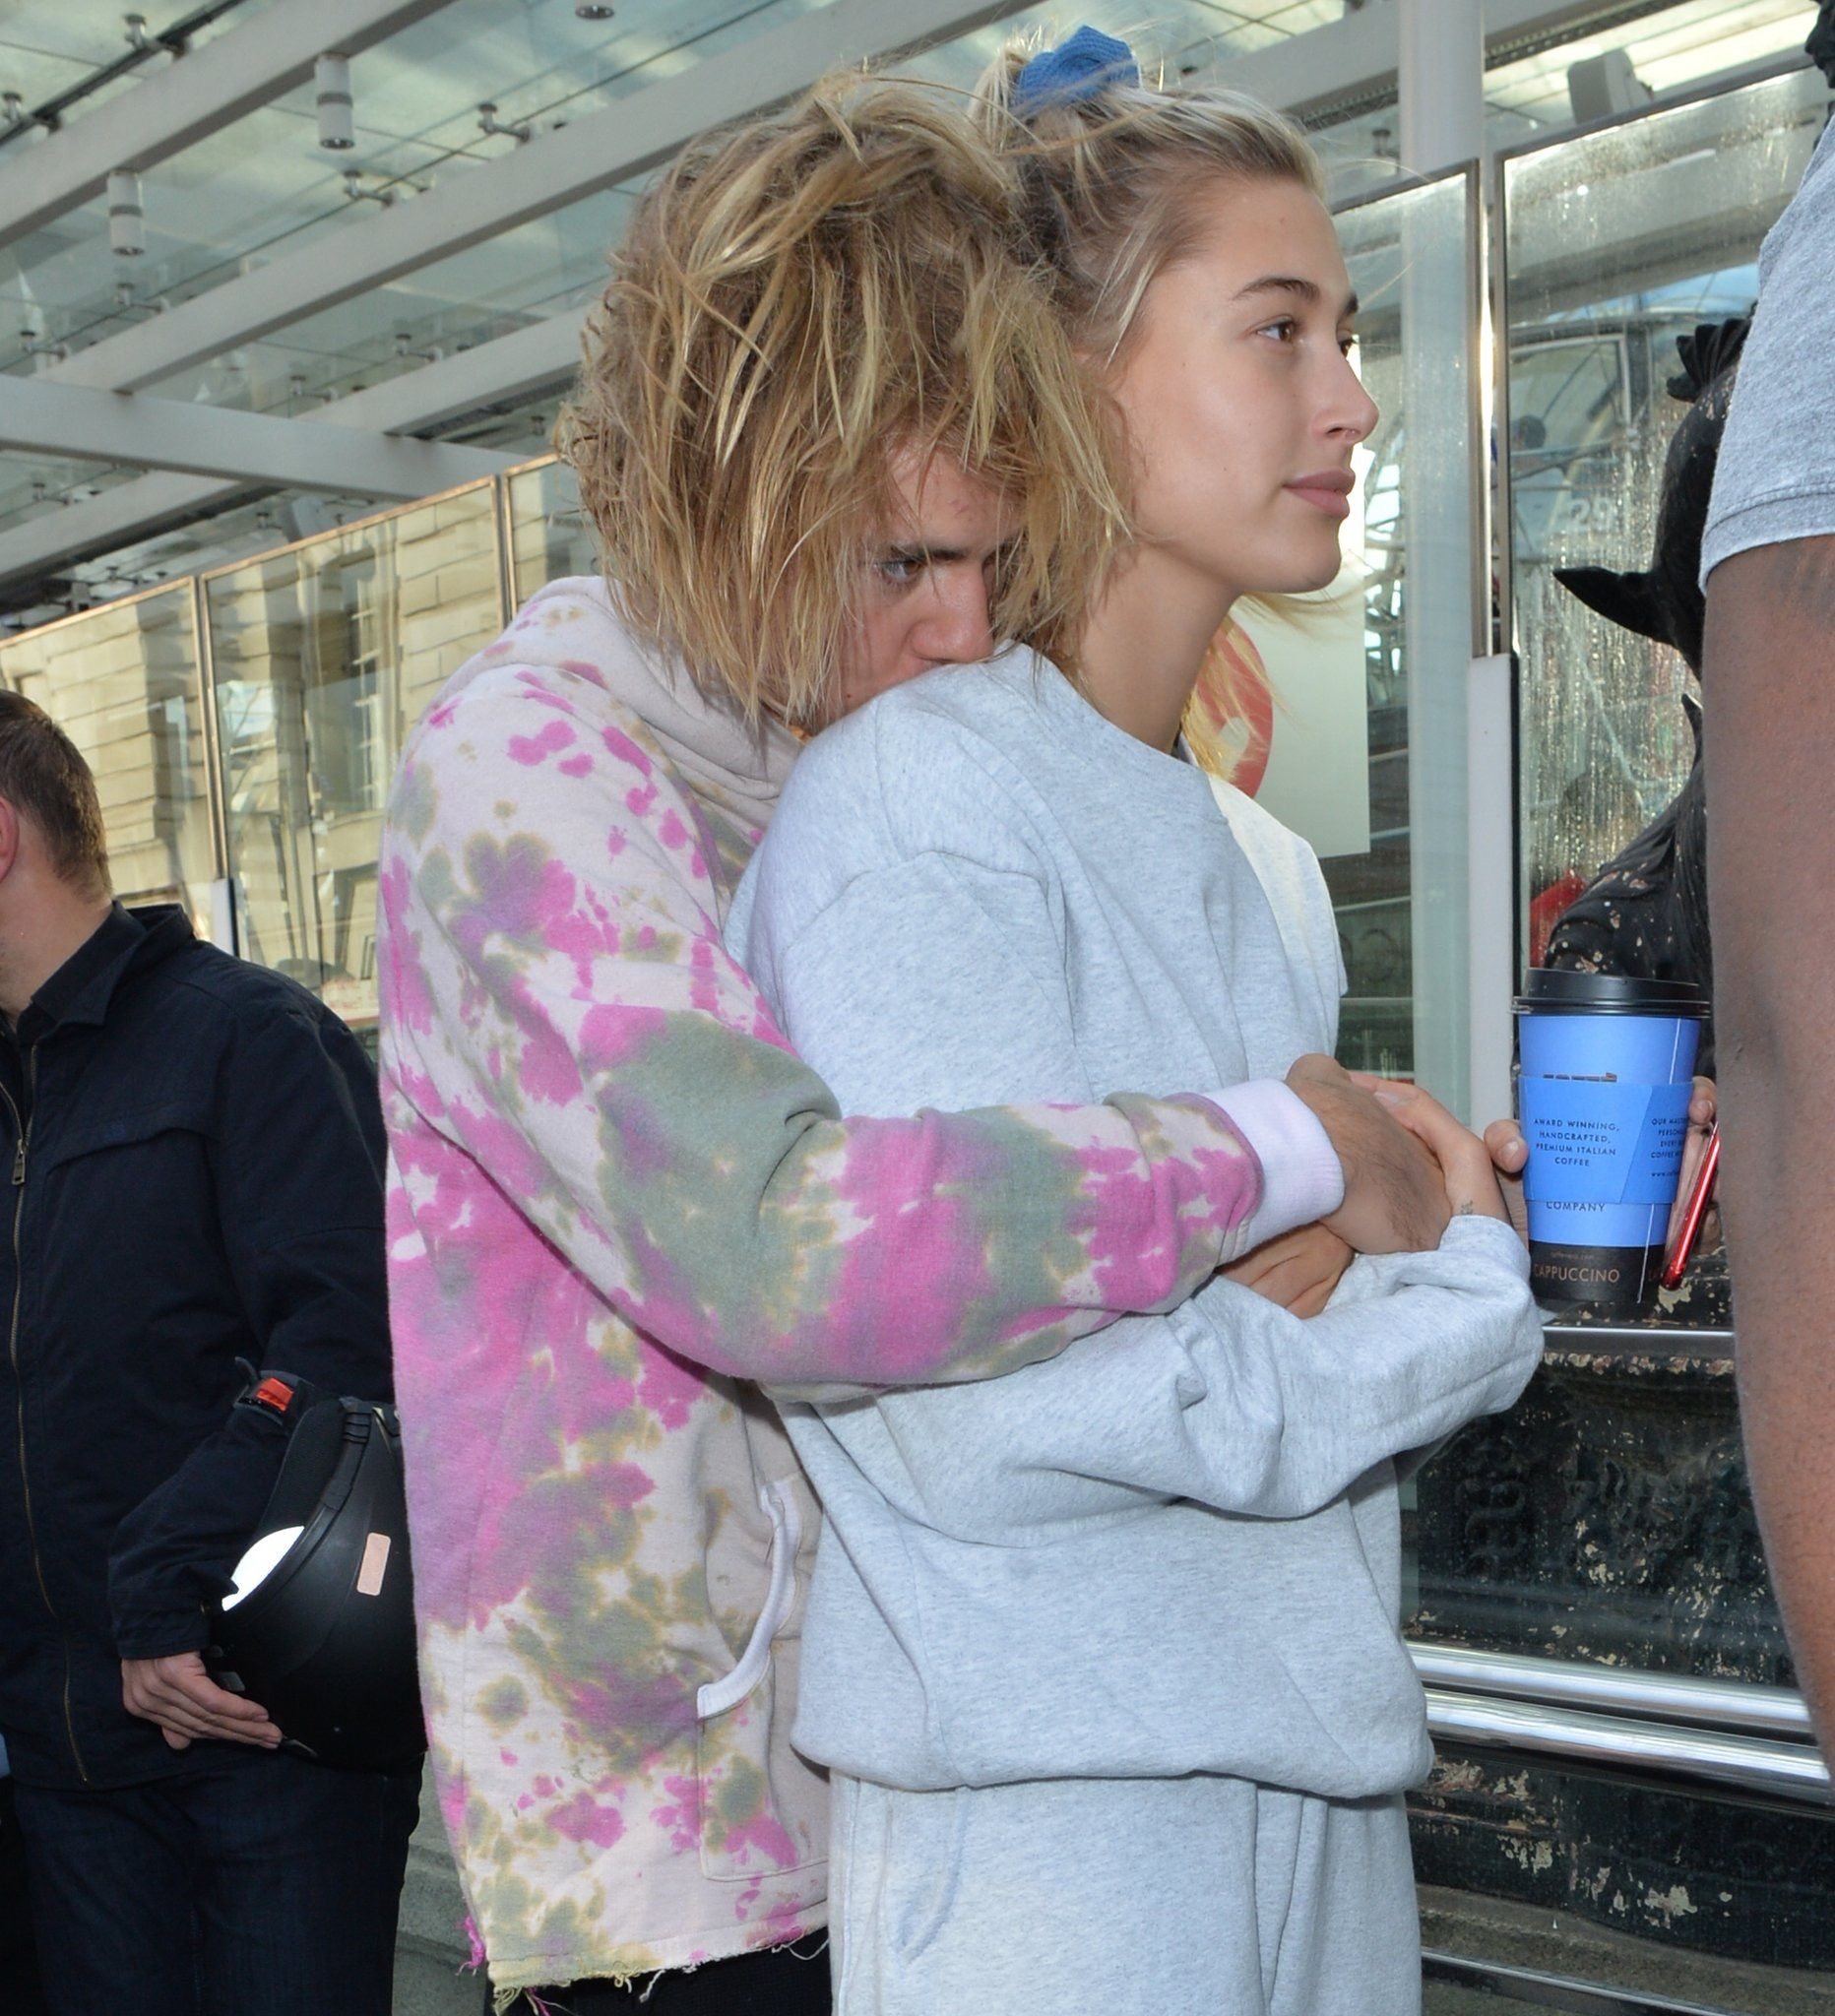 Hailey & Justin. (With Images